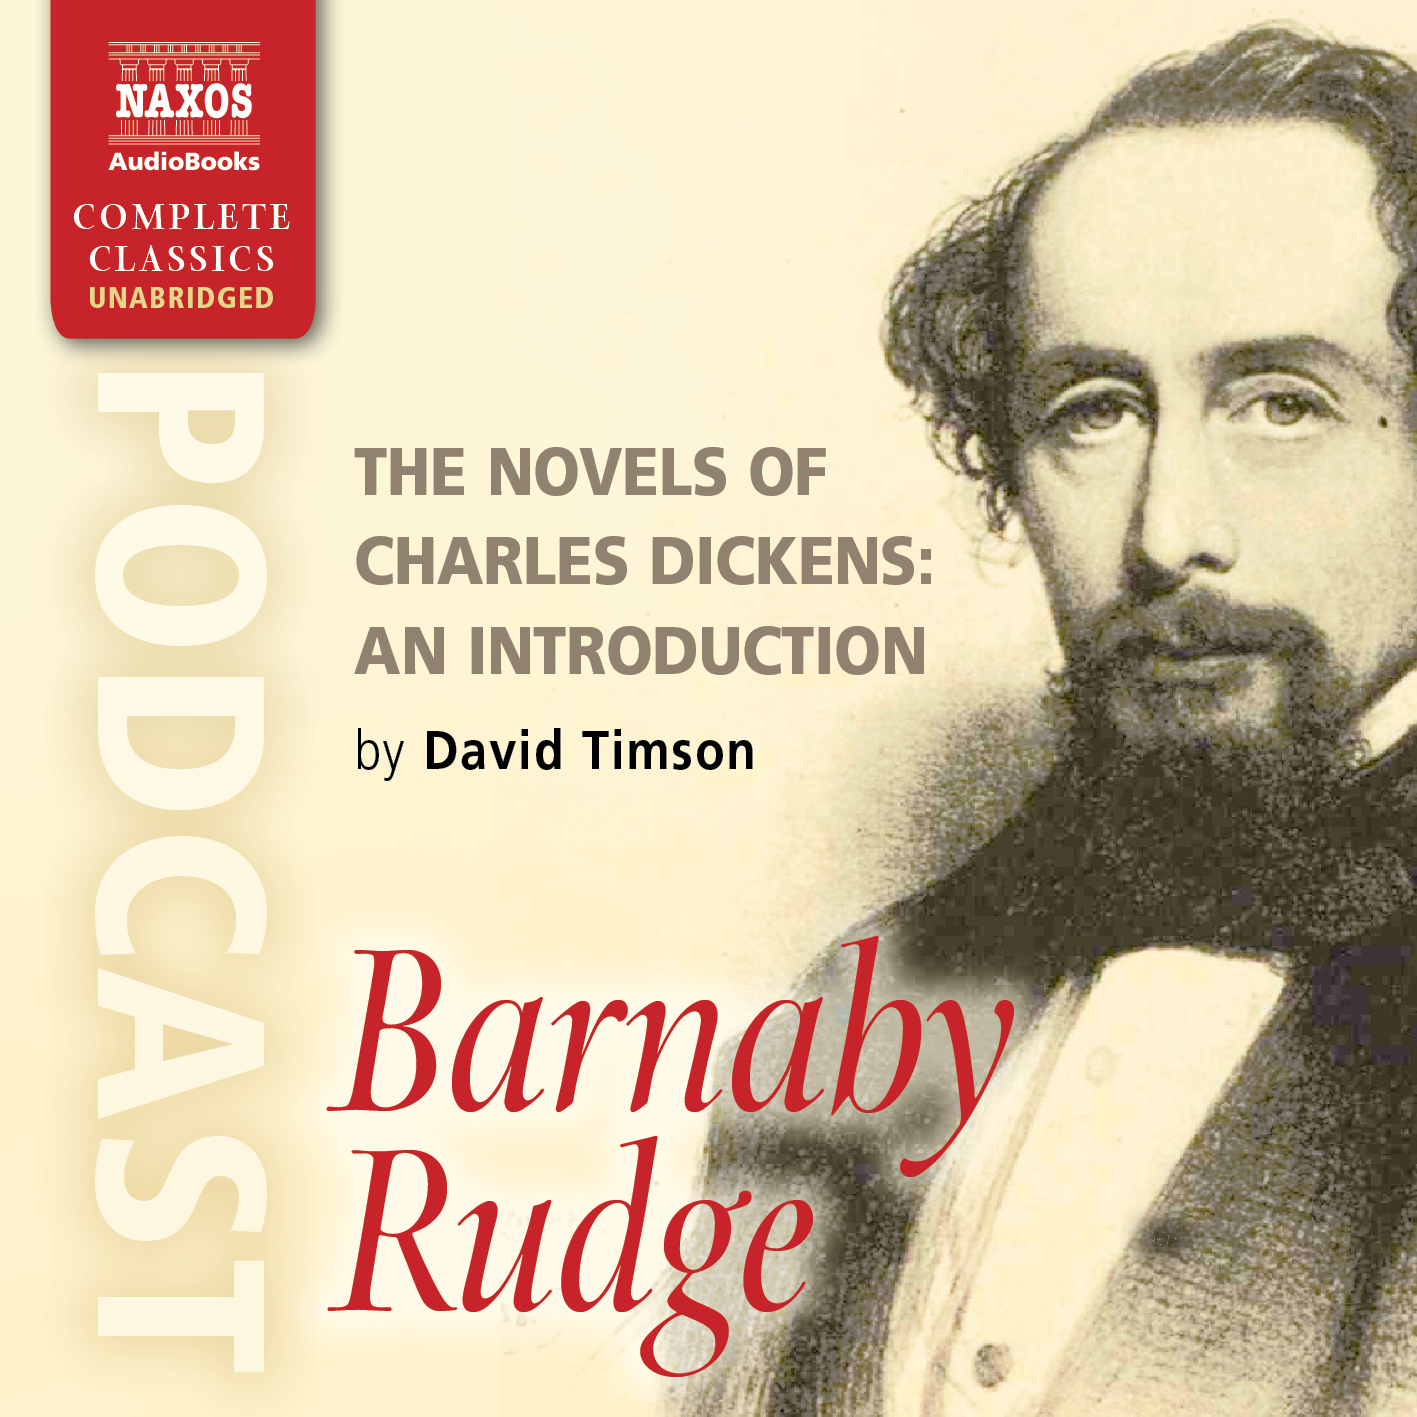 https://naxosaudiobooks.com/wp-content/uploads/2019/08/NA0385_Barnaby_Rudge_Podcast.jpg